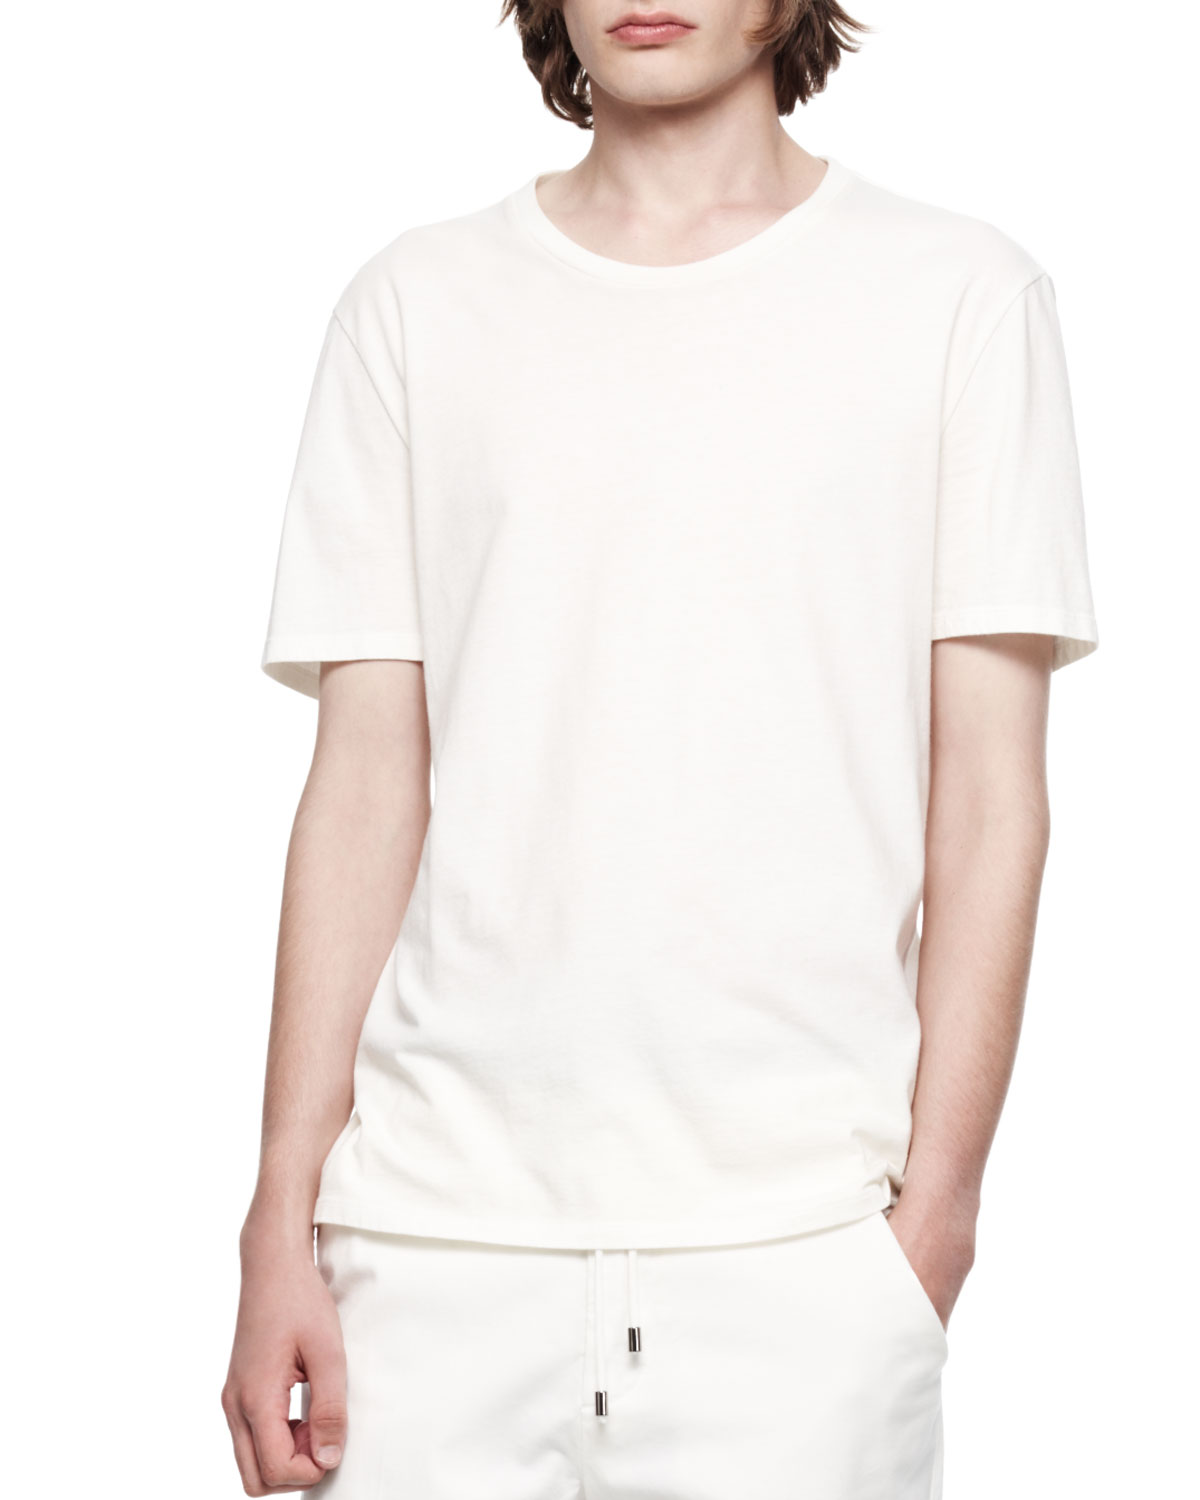 Mens Short Sleeve Crew T Shirt   Maison Martin Margiela   Cream (50)